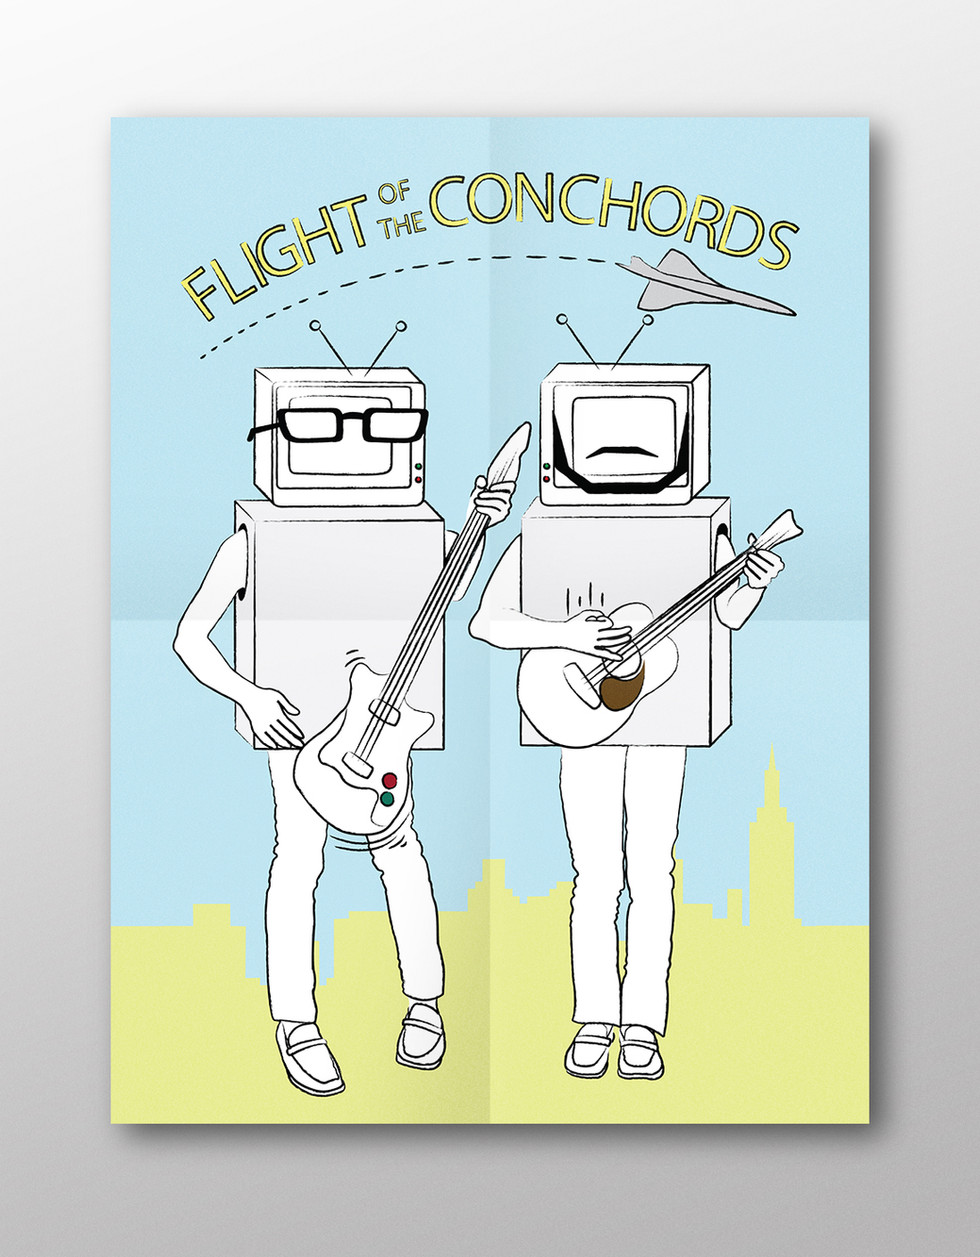 Flight of the Conchords-inspired illustration